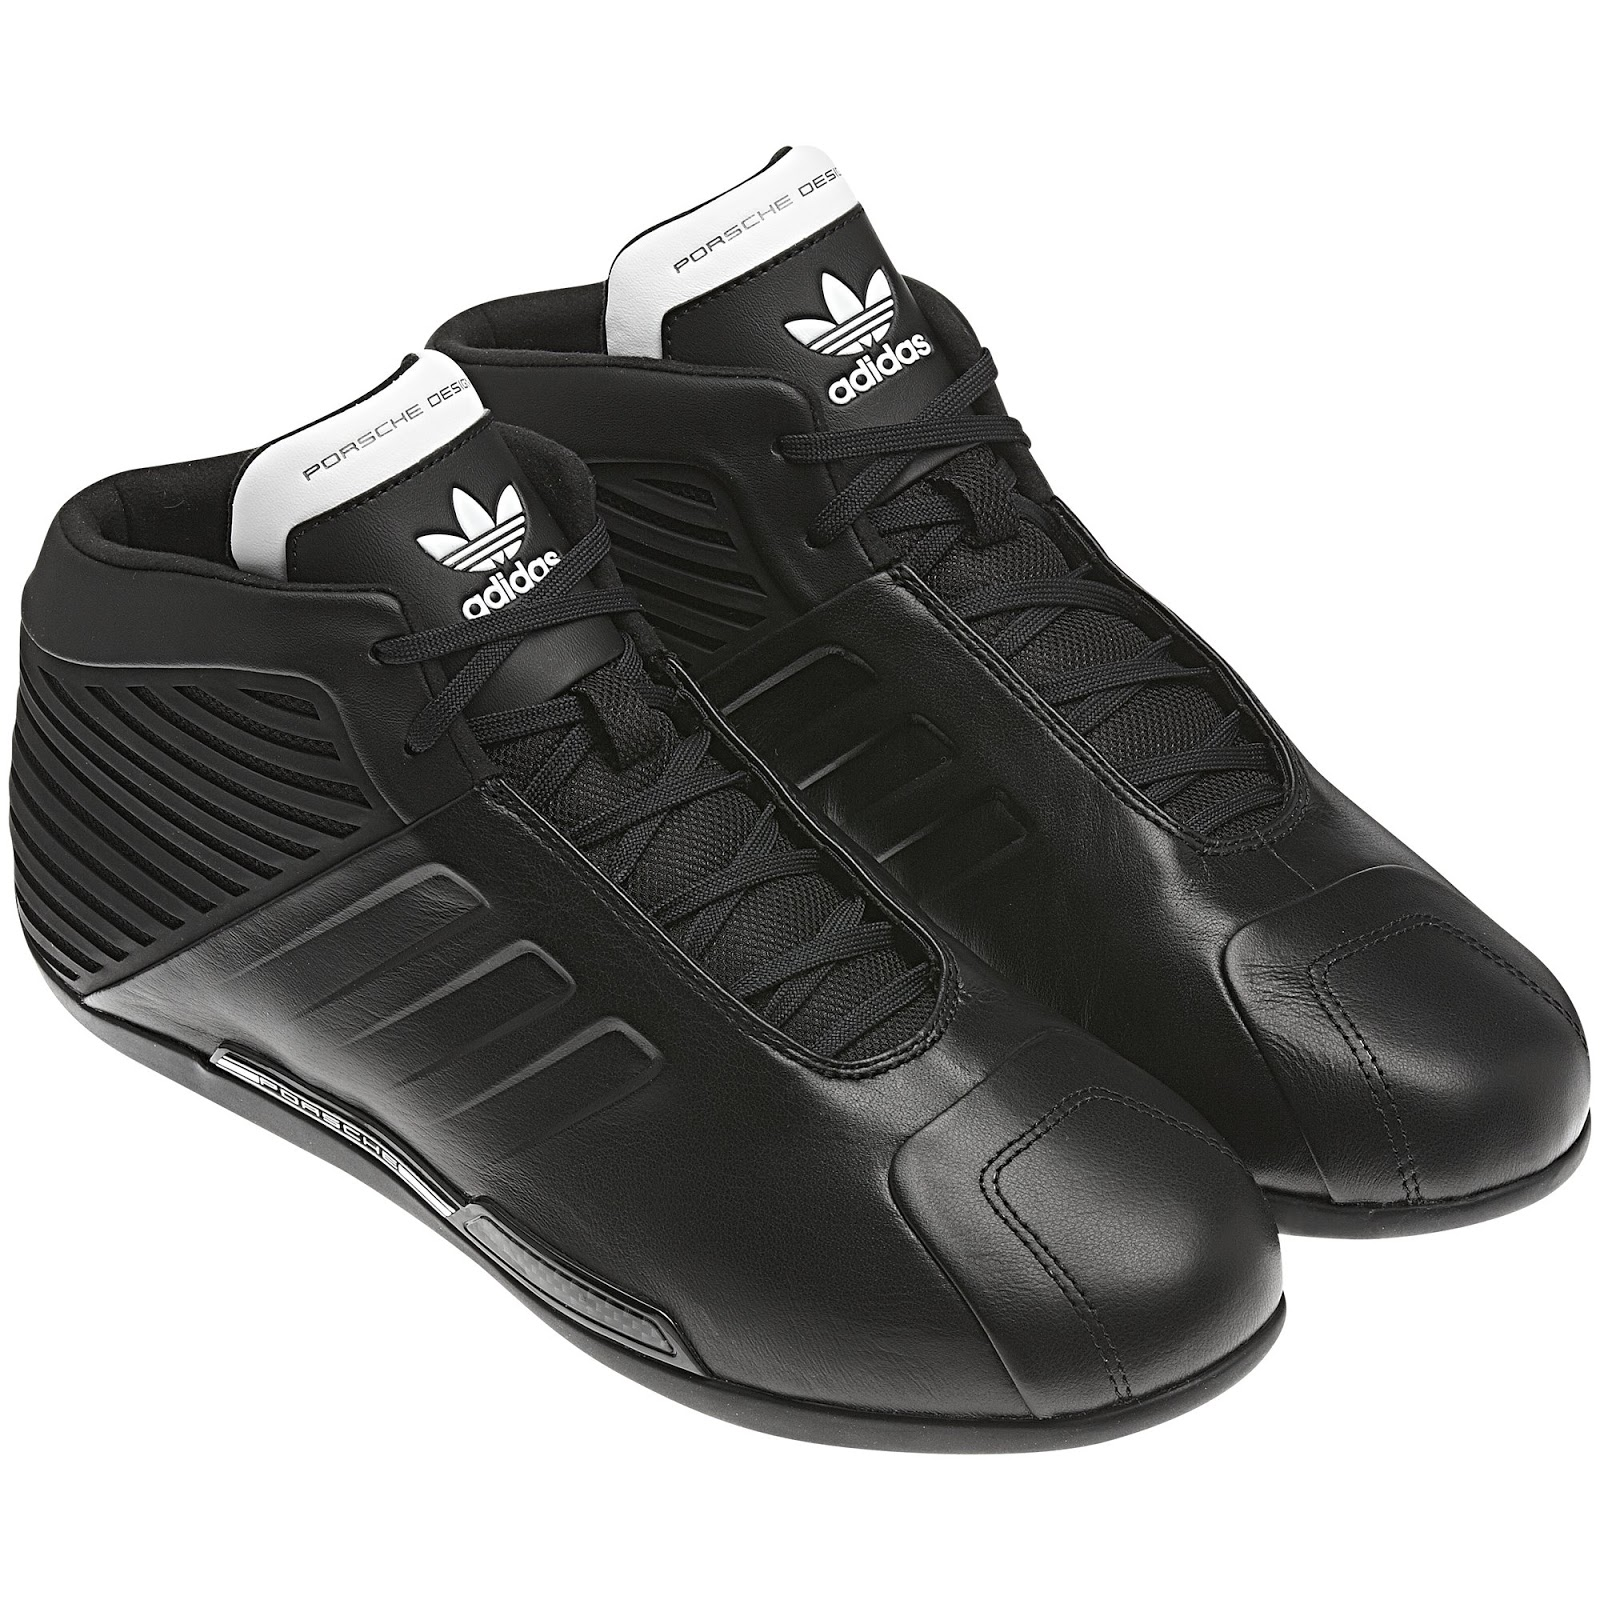 low priced 5a305 cc795 ... coupon code for price of adidas porsche 911 s is 130 and horsepower  depends on your